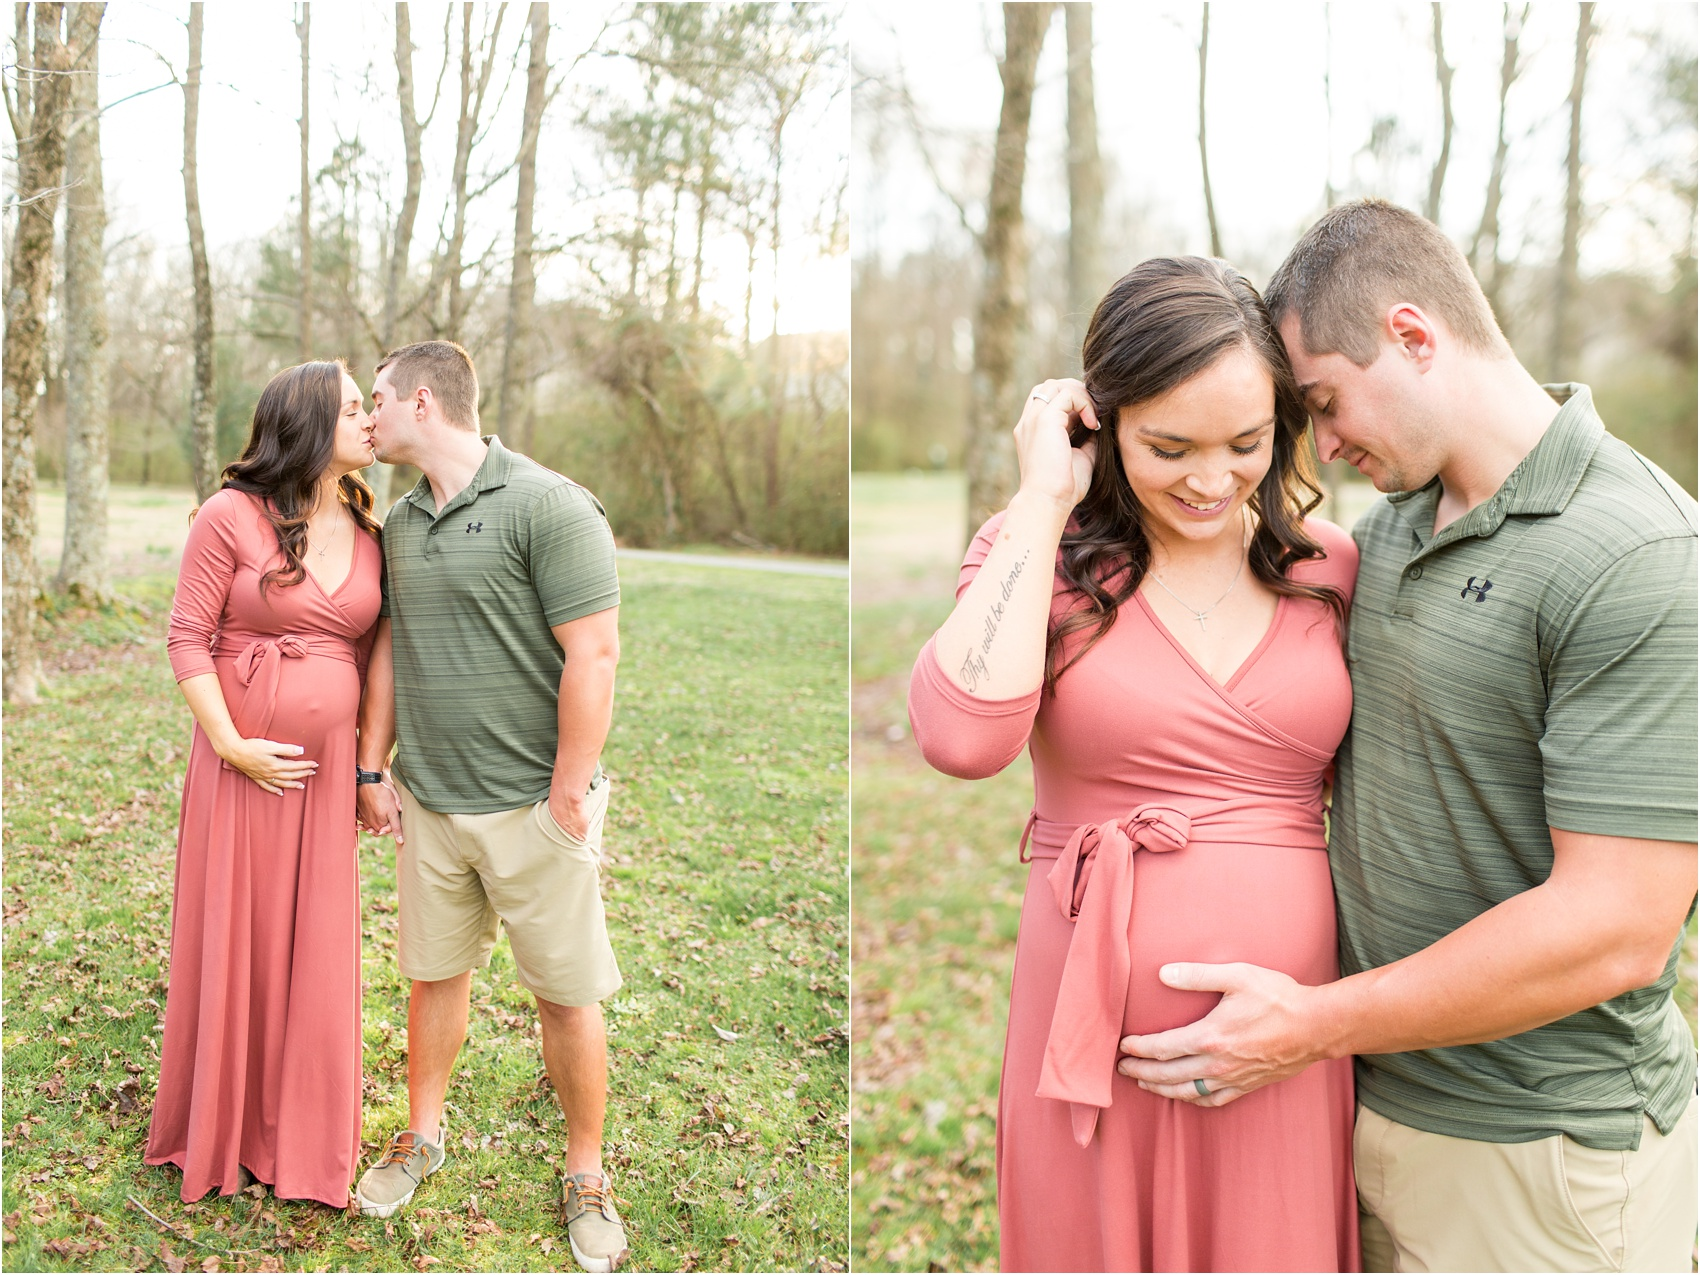 Savannah Eve Photography- Alexis & Josh- Maternity Session-24.jpg